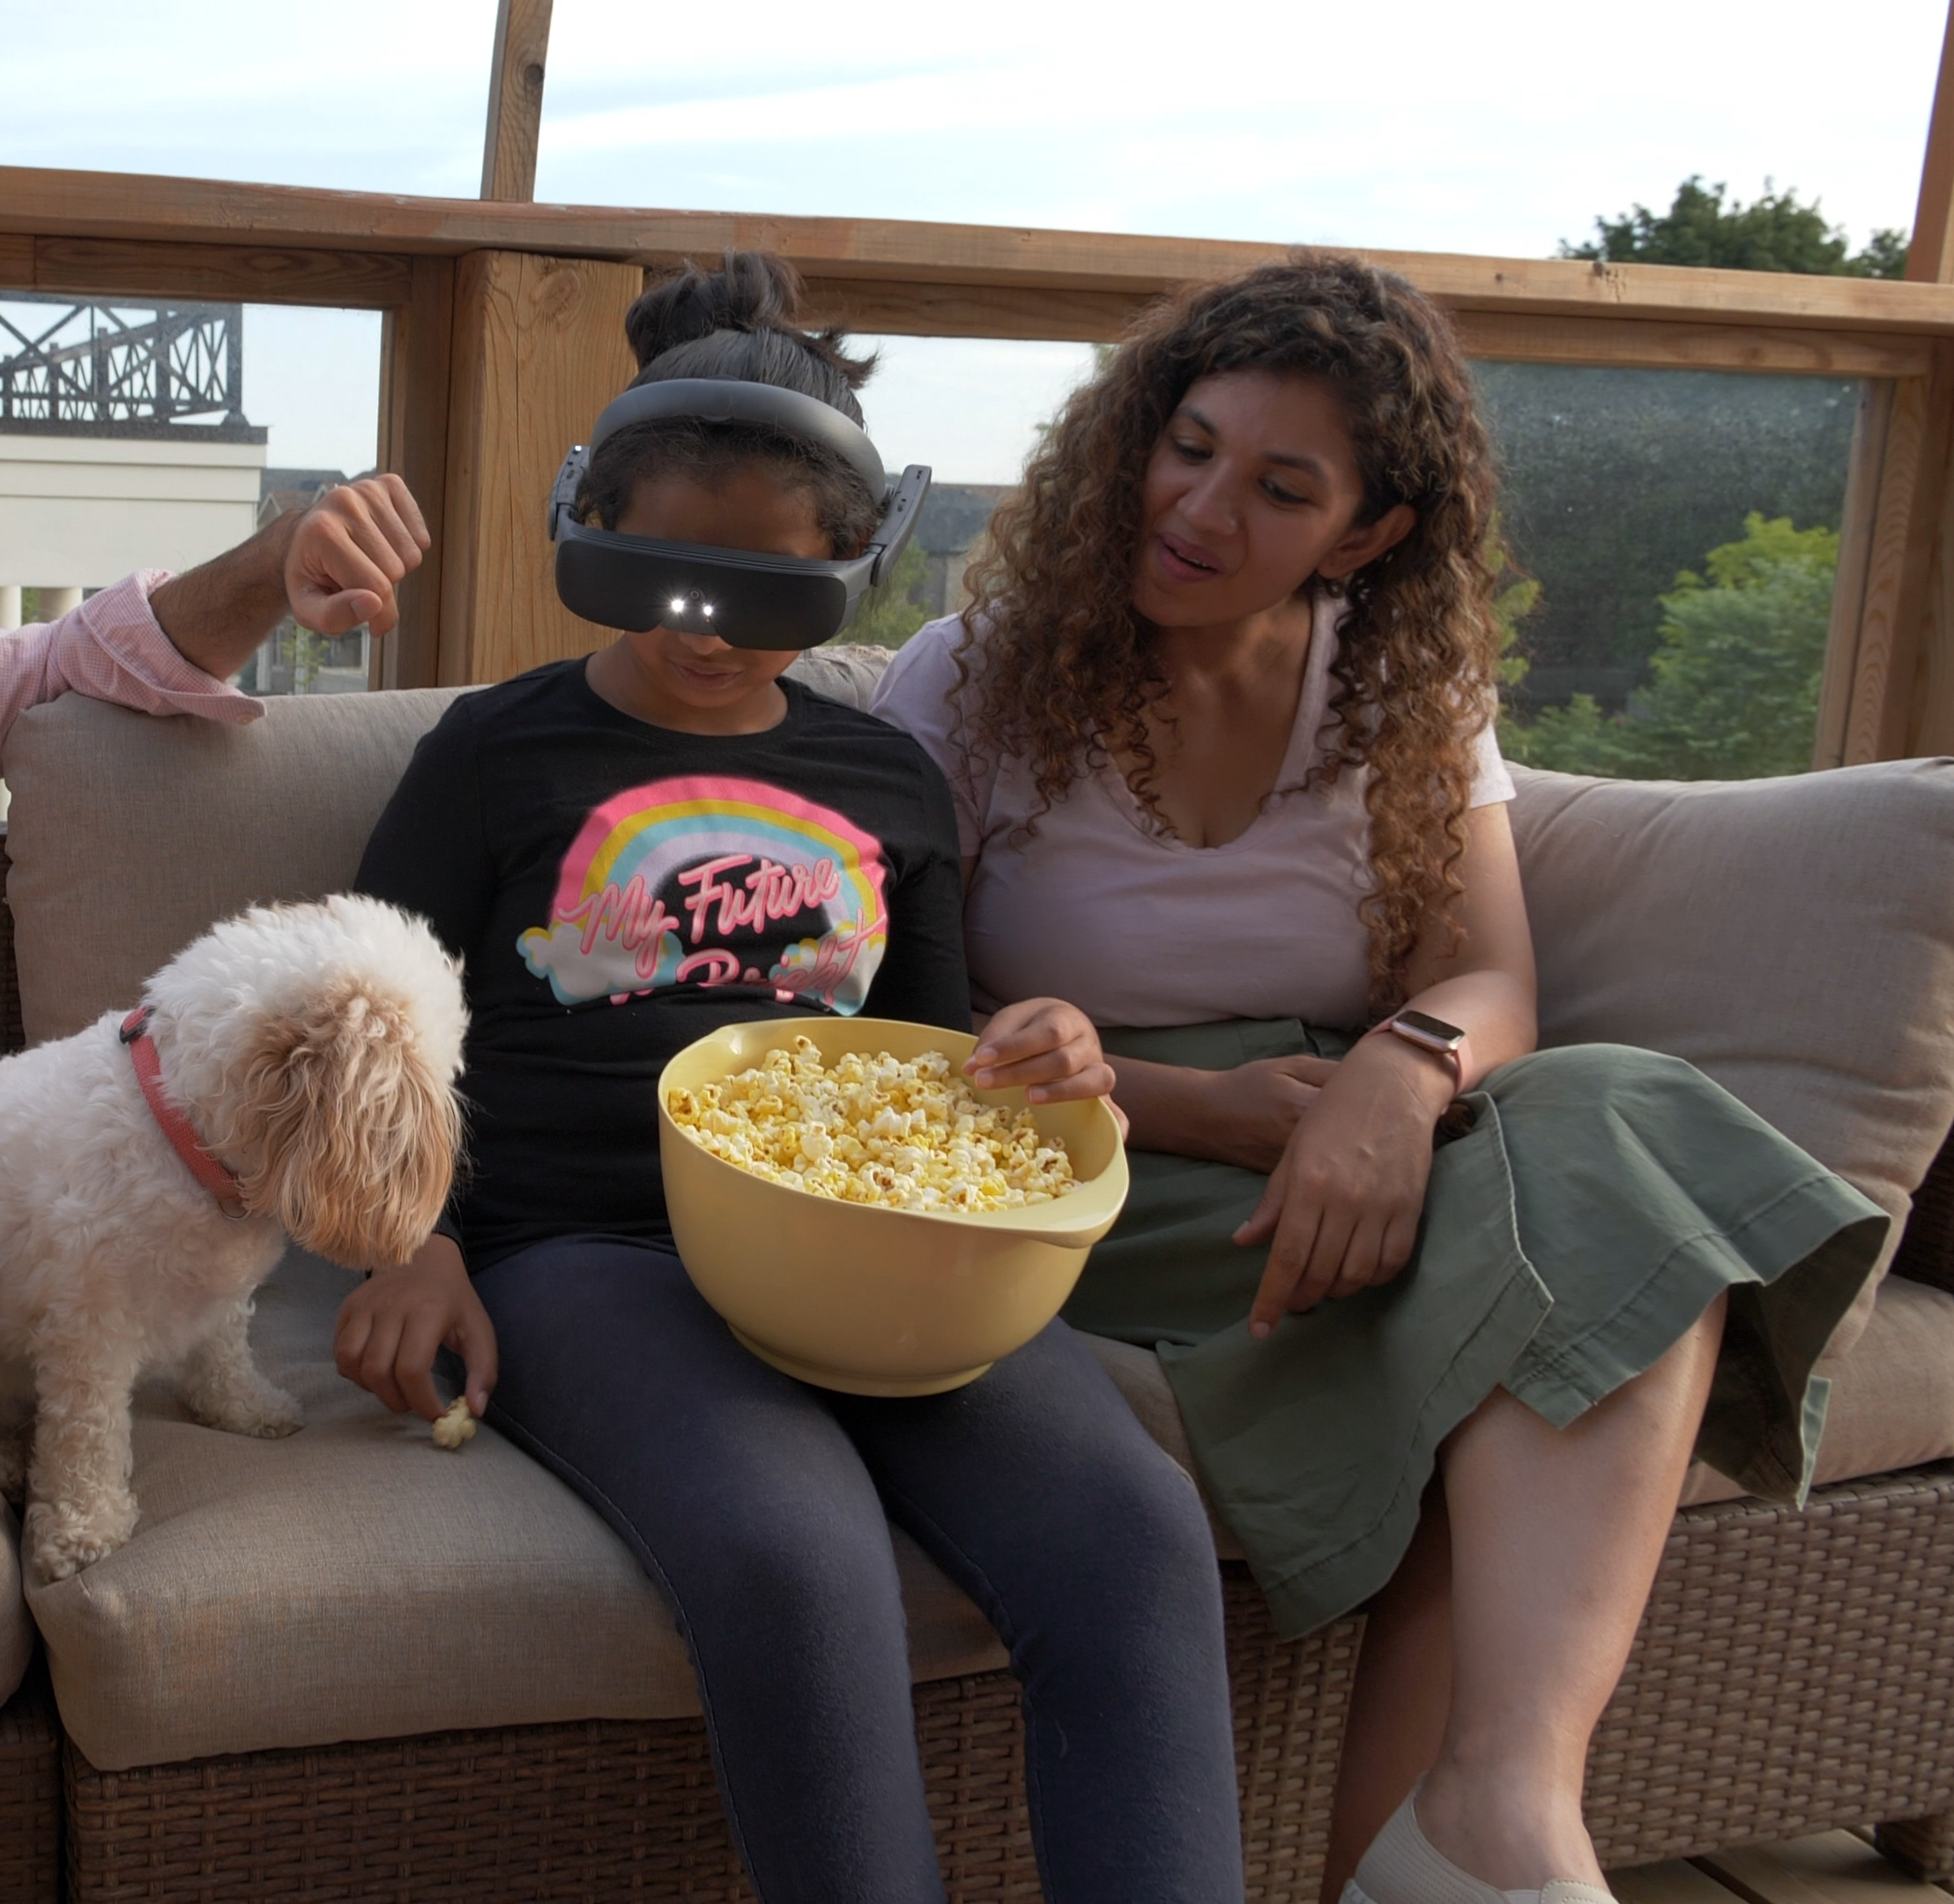 Zara and her family watching a movie